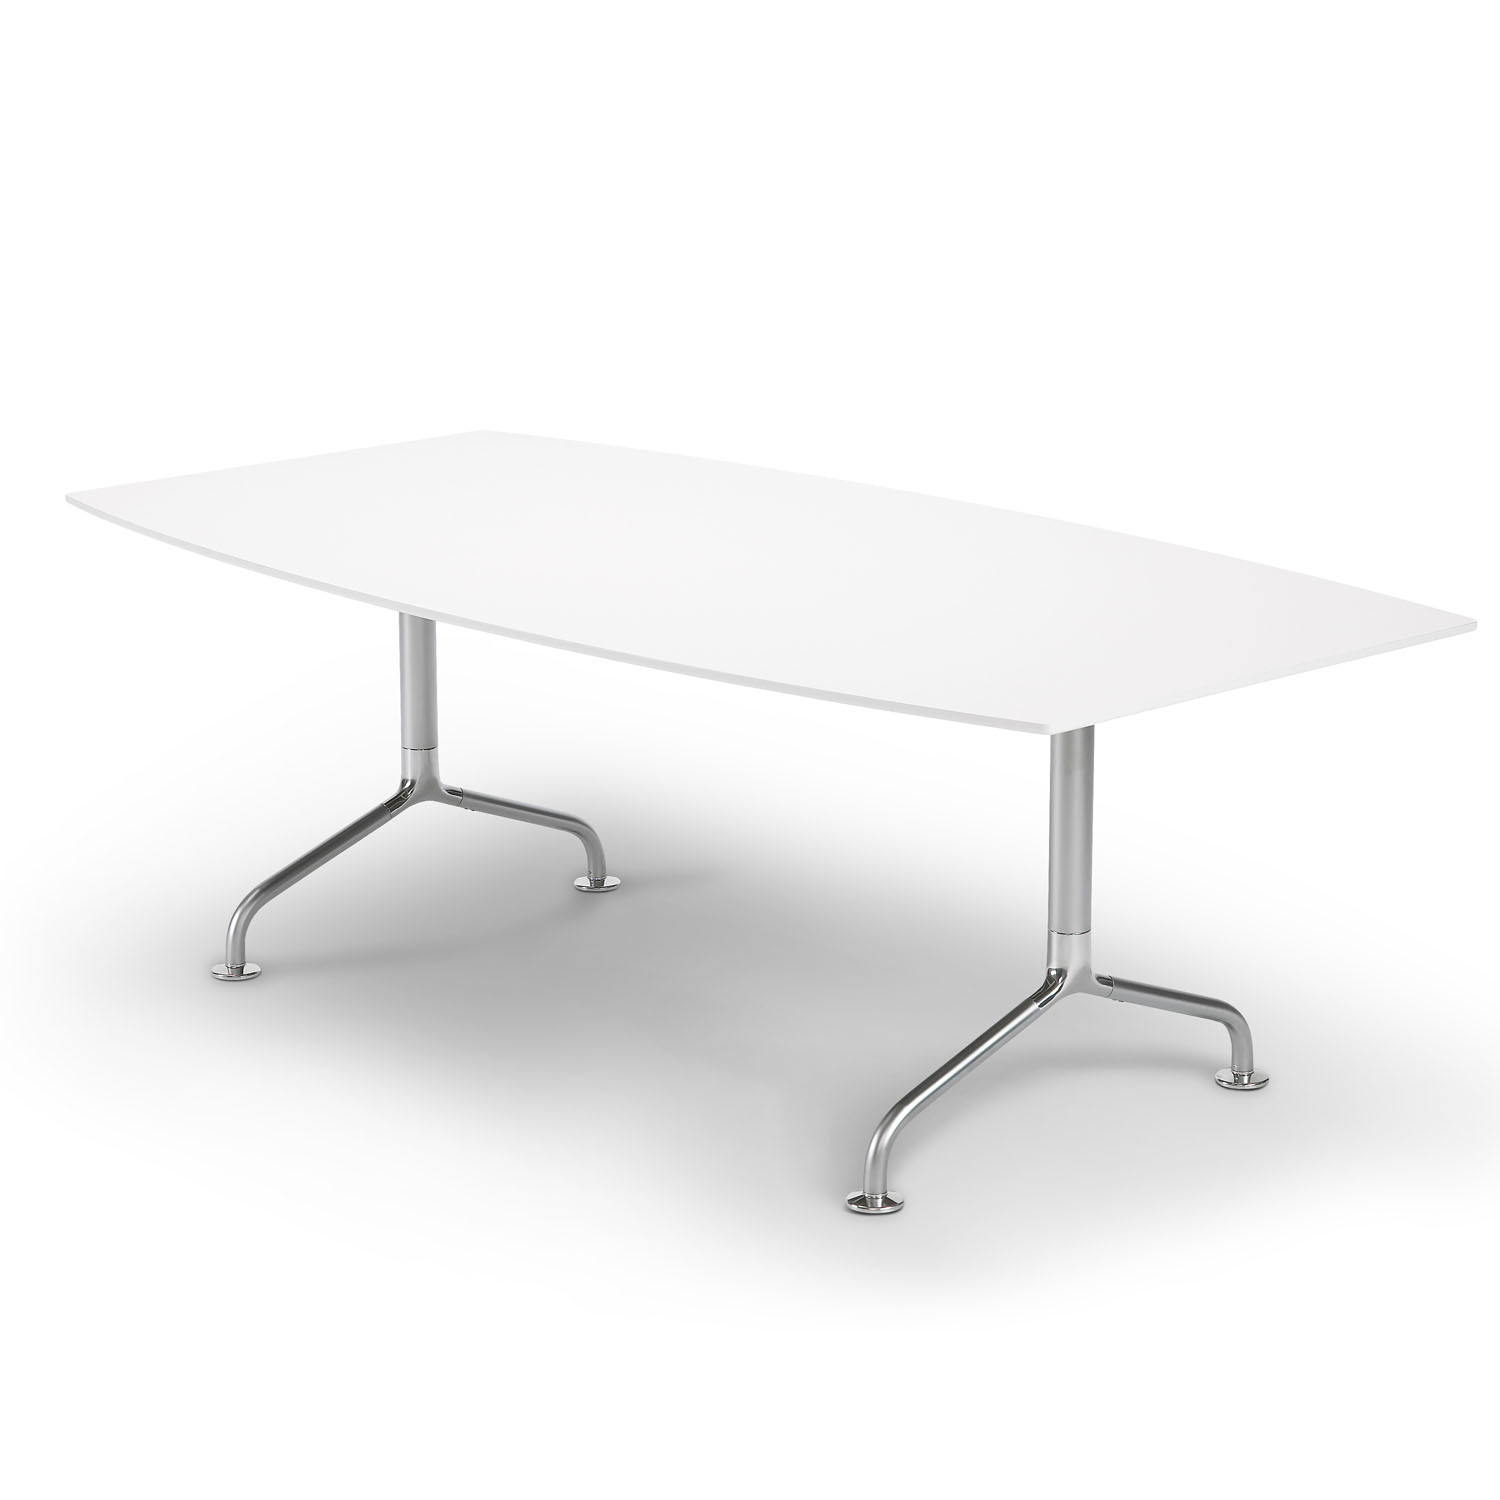 Ono Meeting and Conference Tables